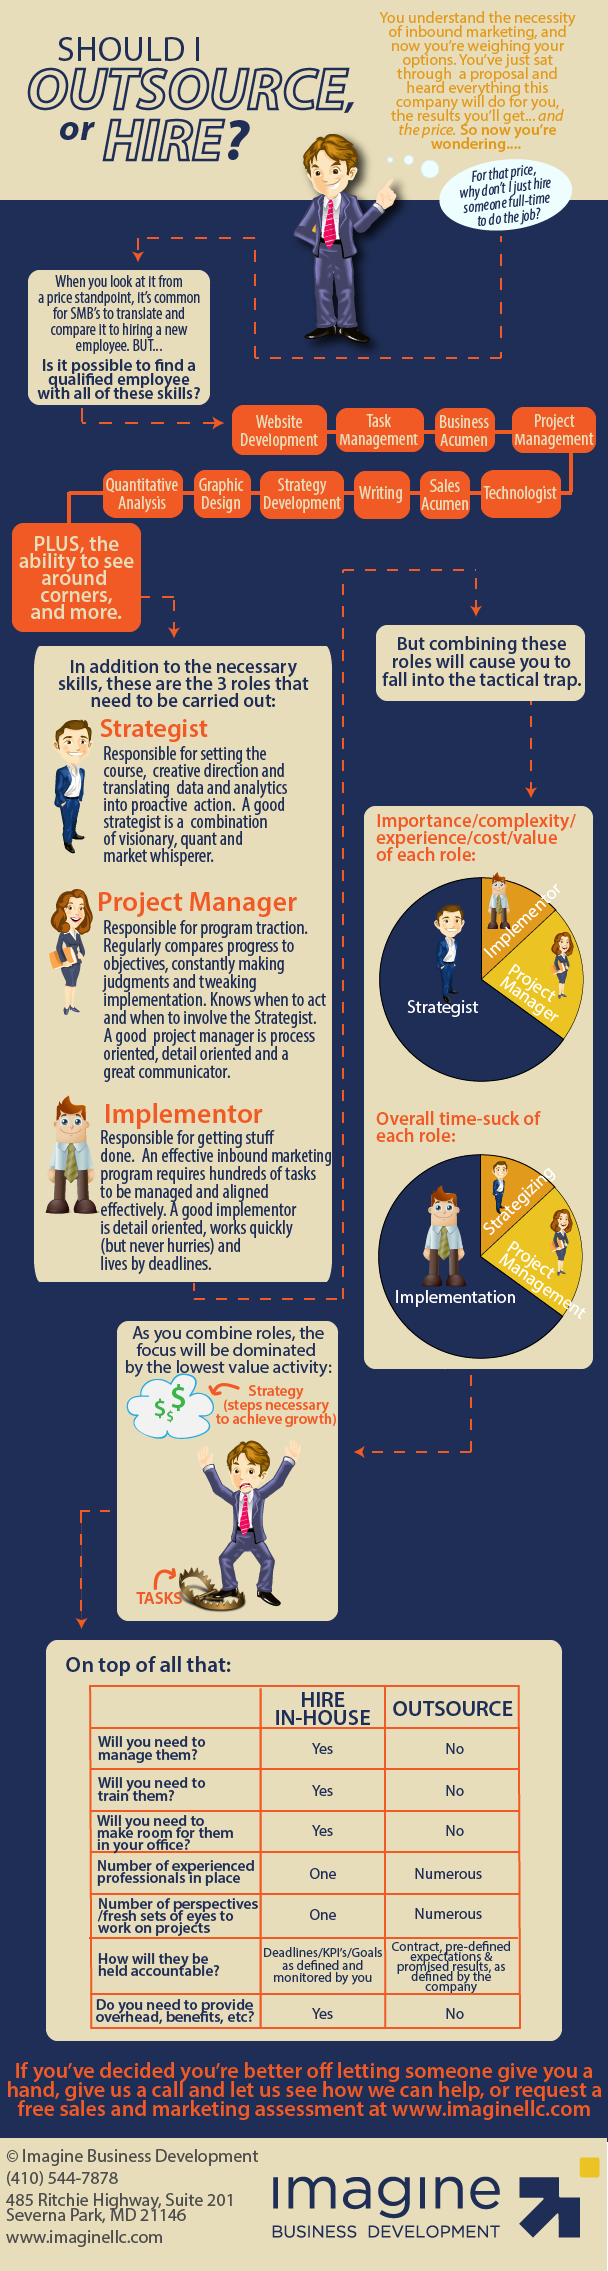 Outsource_vs_Hire_Marketing_infographic-01